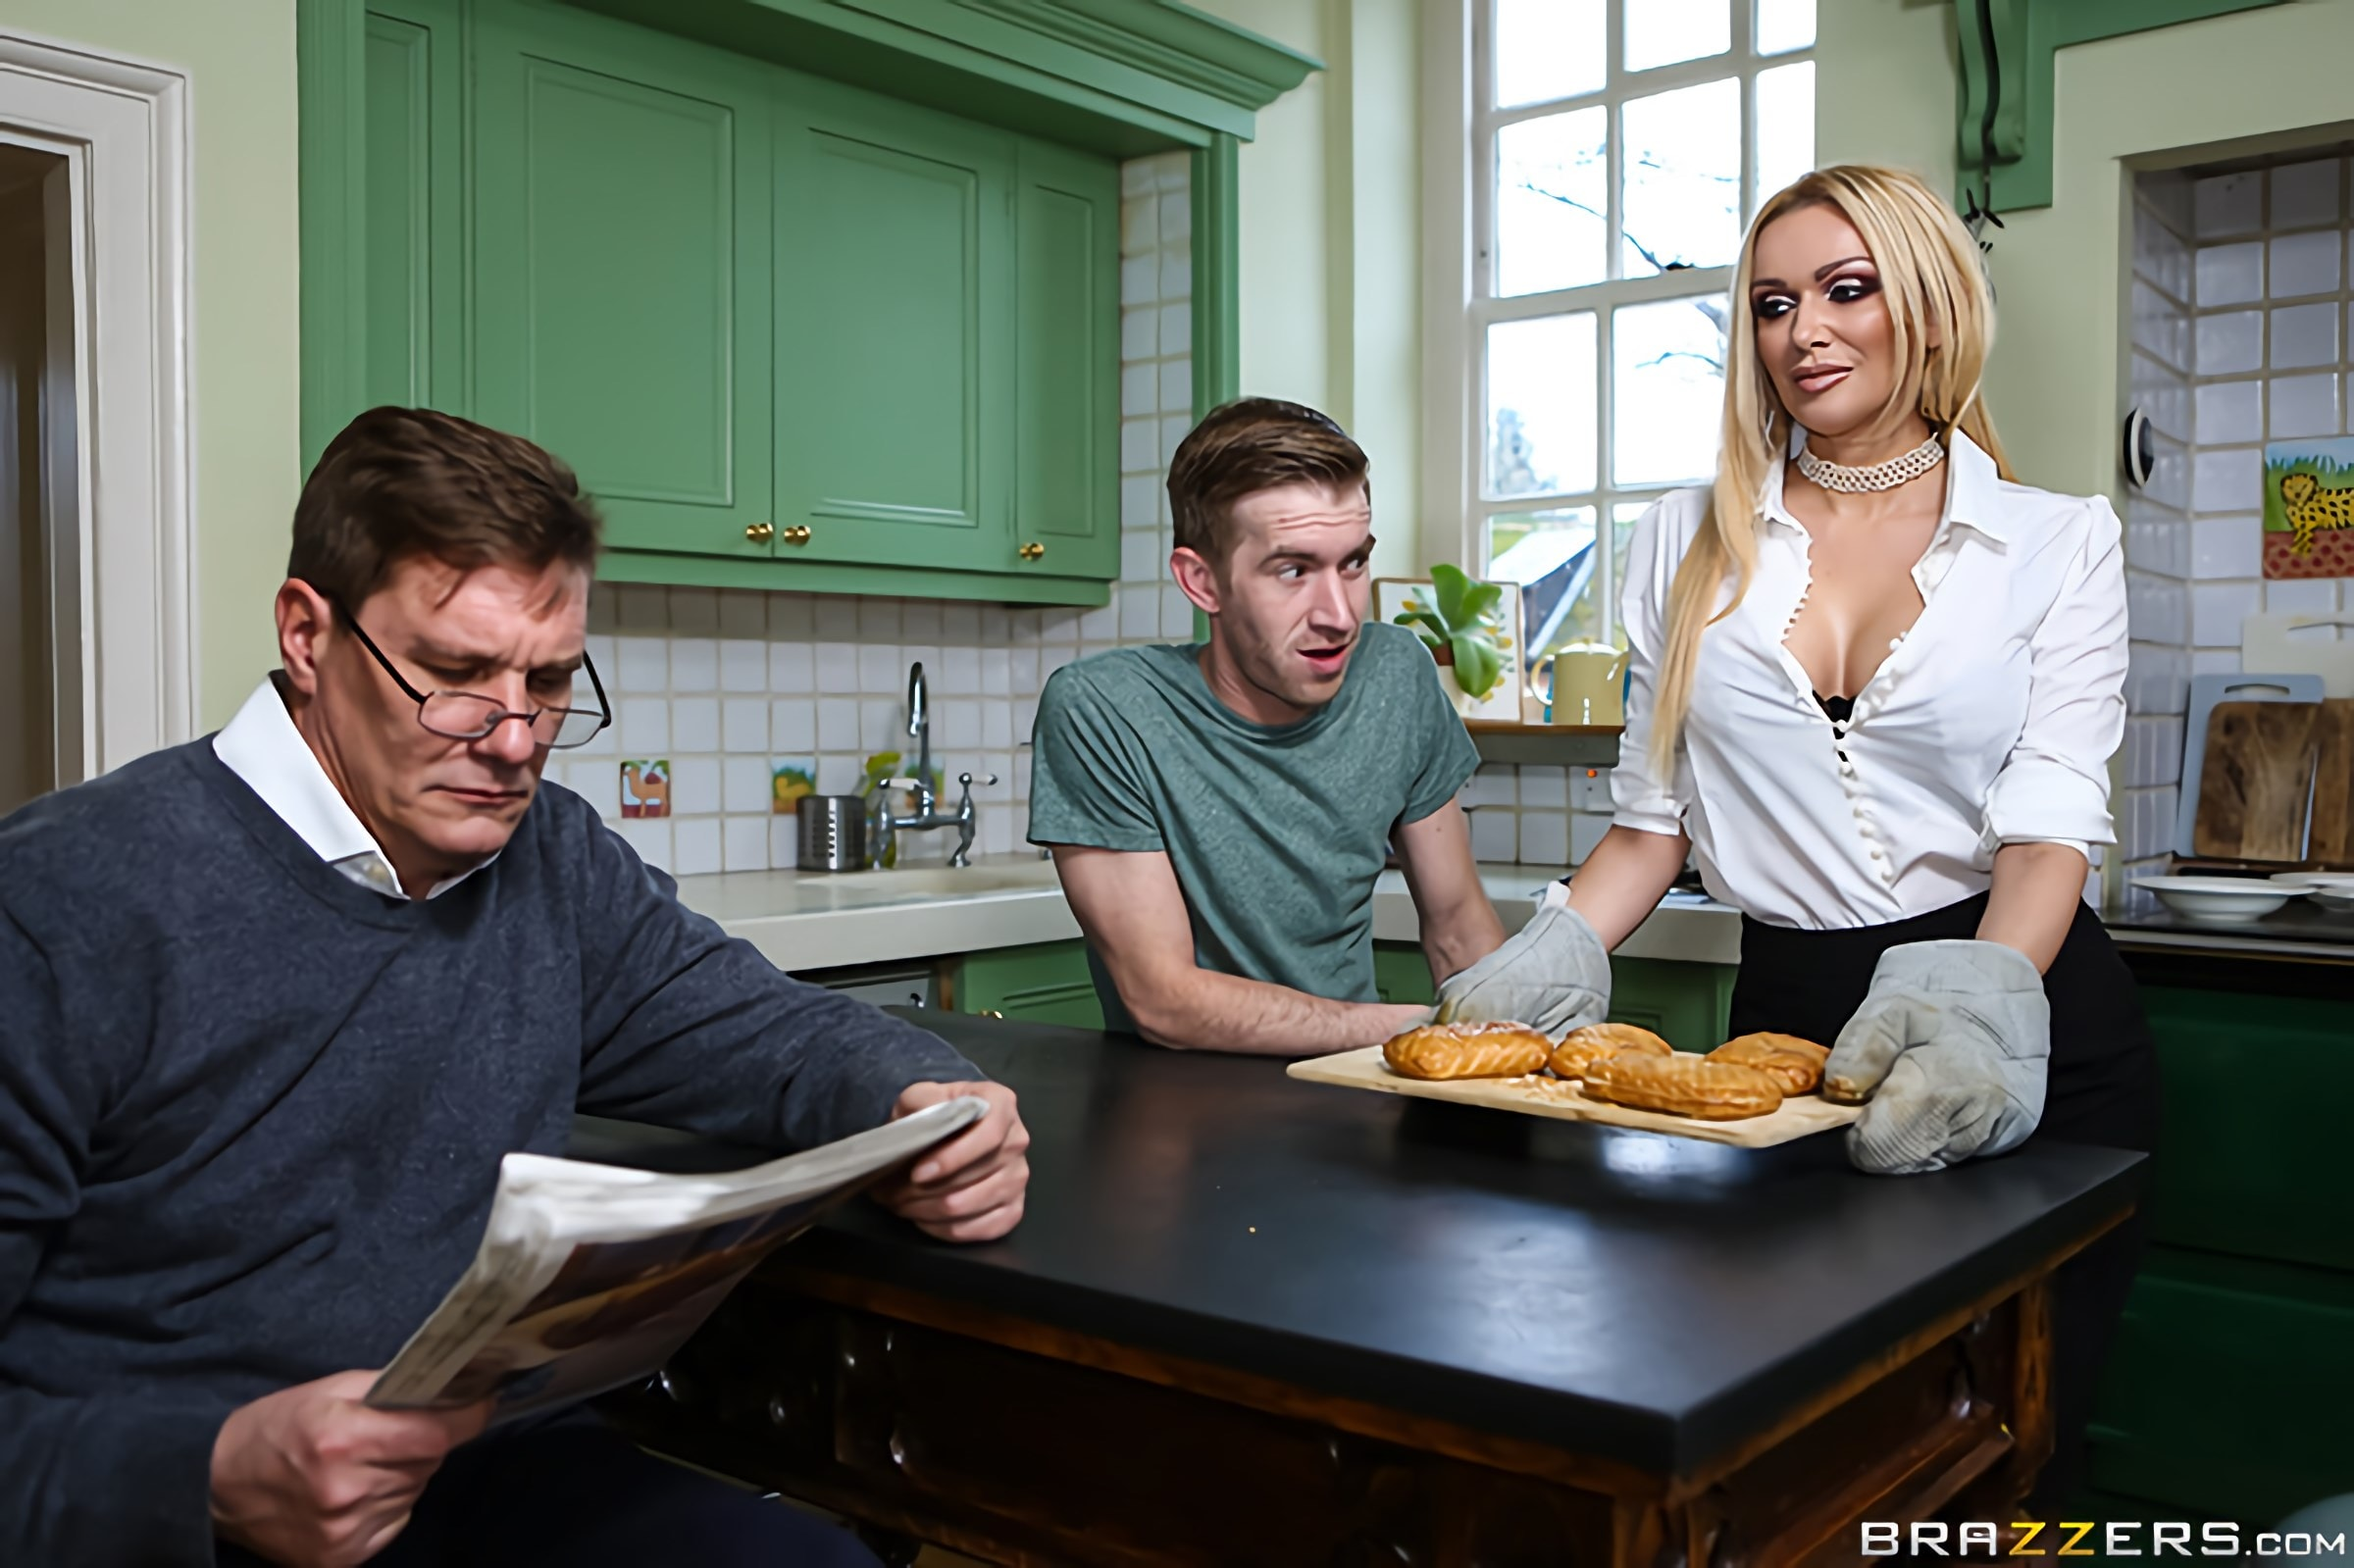 Brazzers 'What's Good For The Goose' starring Amber Jayne (photo 1)